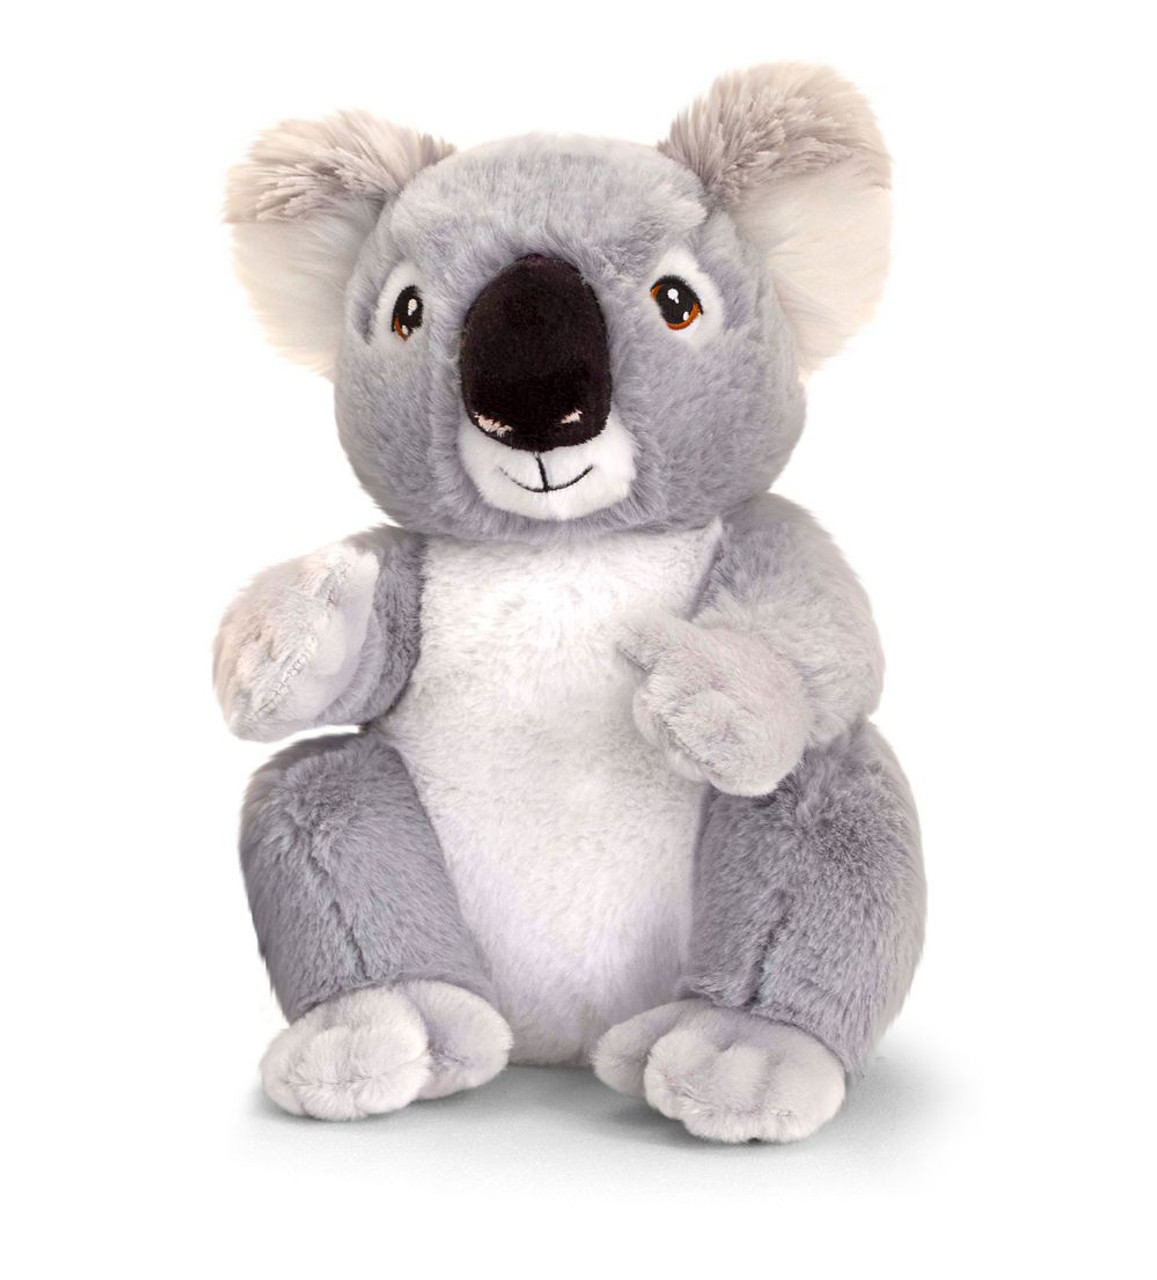 Korimco Koala Keeleco at Baby Barn Discounts The loveable plush koala that's 100% recycled, 100% huggable and made from responsible resources. The perfect companion for Aussie kids.